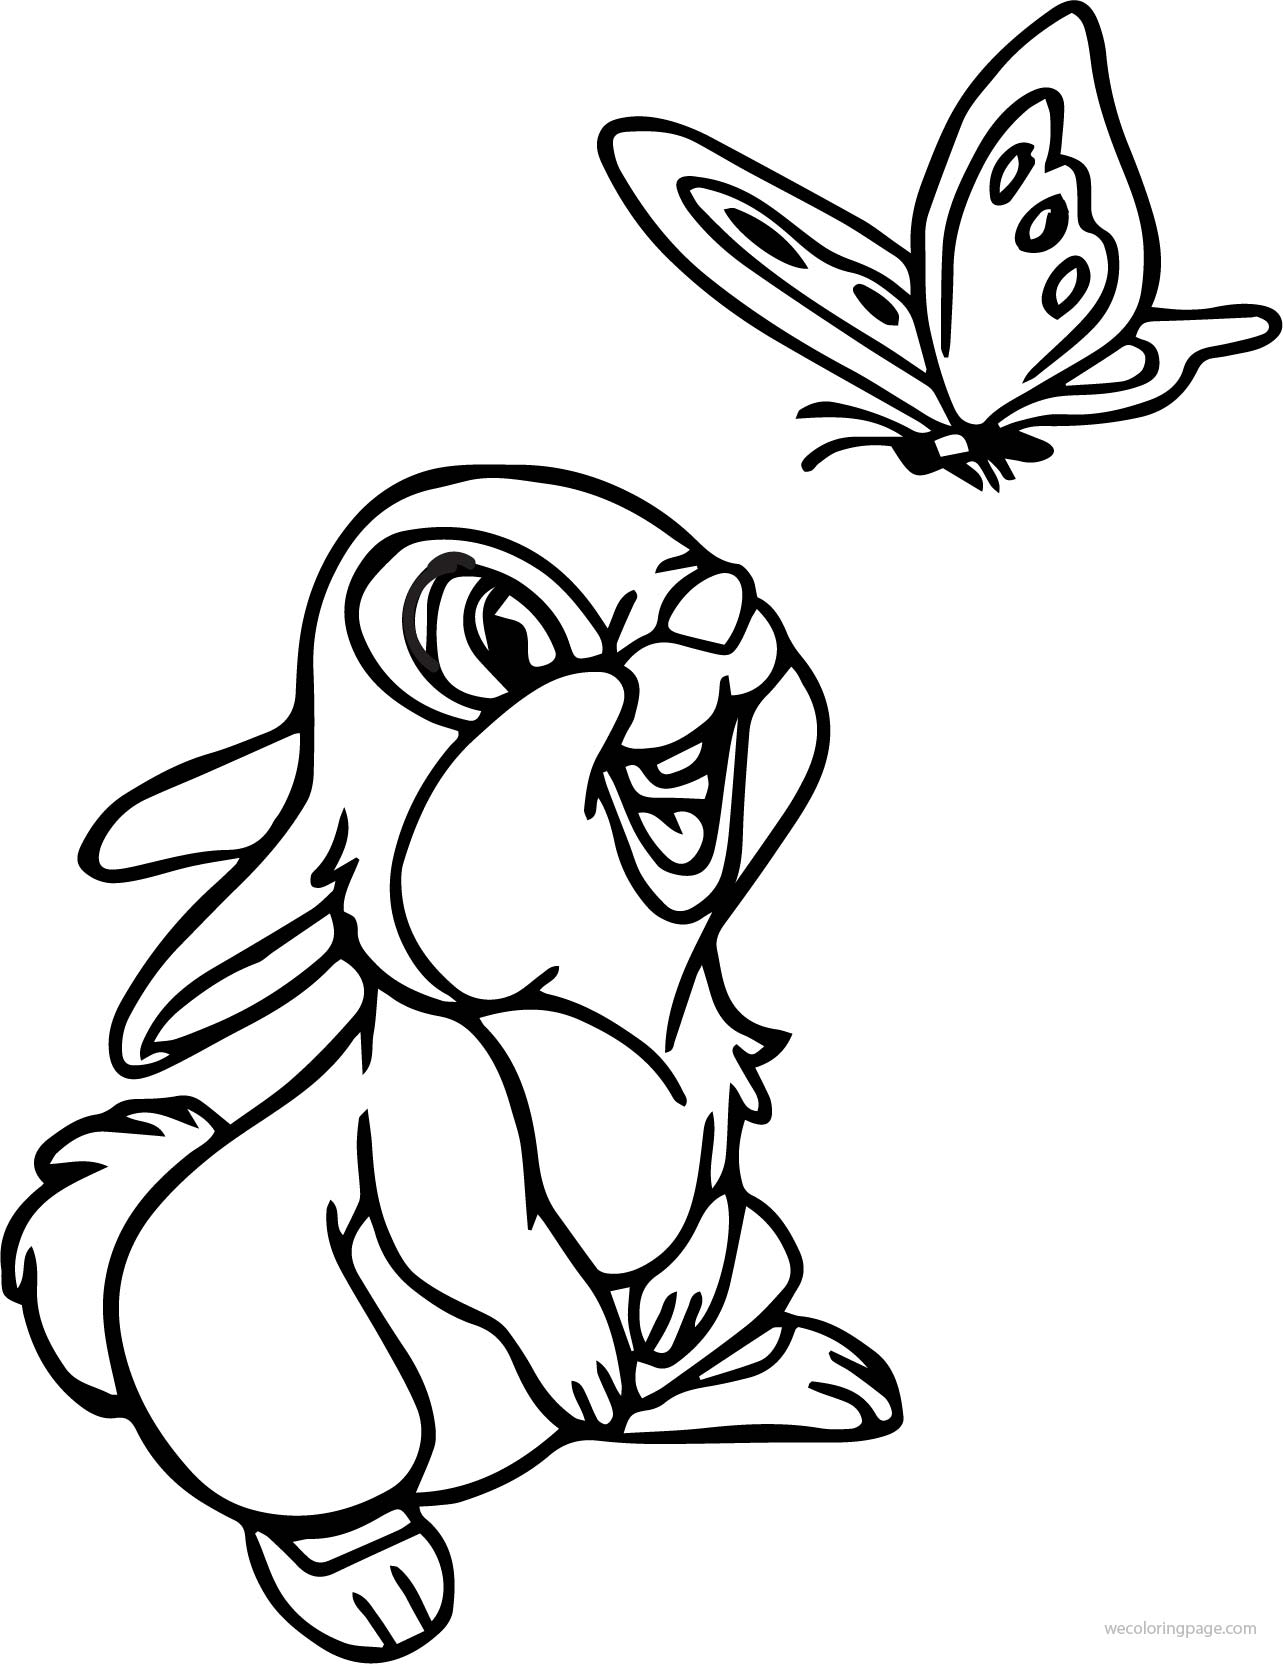 Disney Bambi Thumper Bunny Hello Cartoon Coloring Page